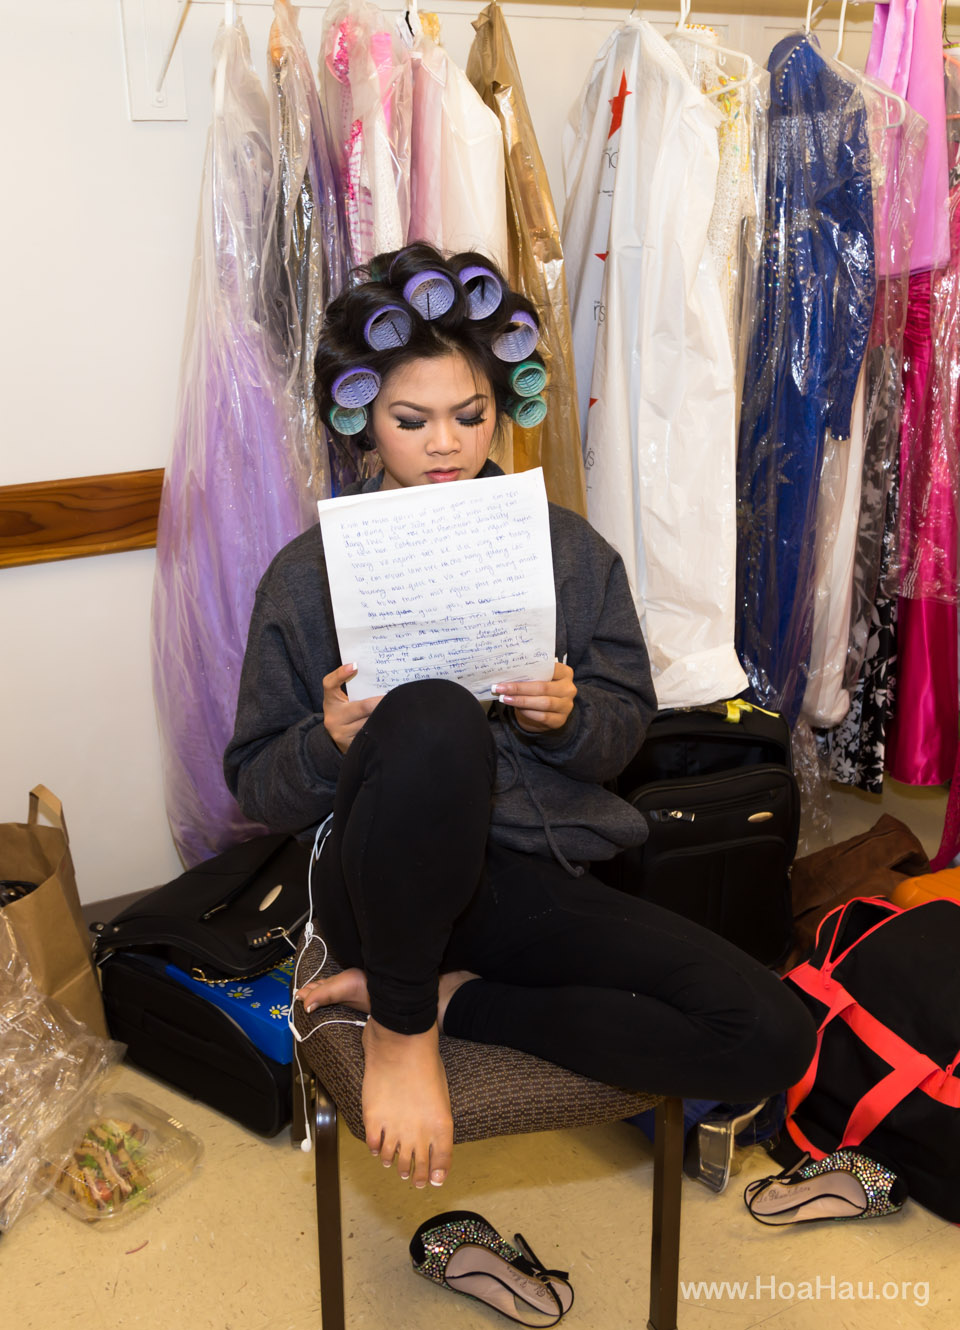 Miss Vietnam of Northern California 2014 - Hoa Hau Ao Dai Bac Cali 2014 - Behind the Scenes - Image 122